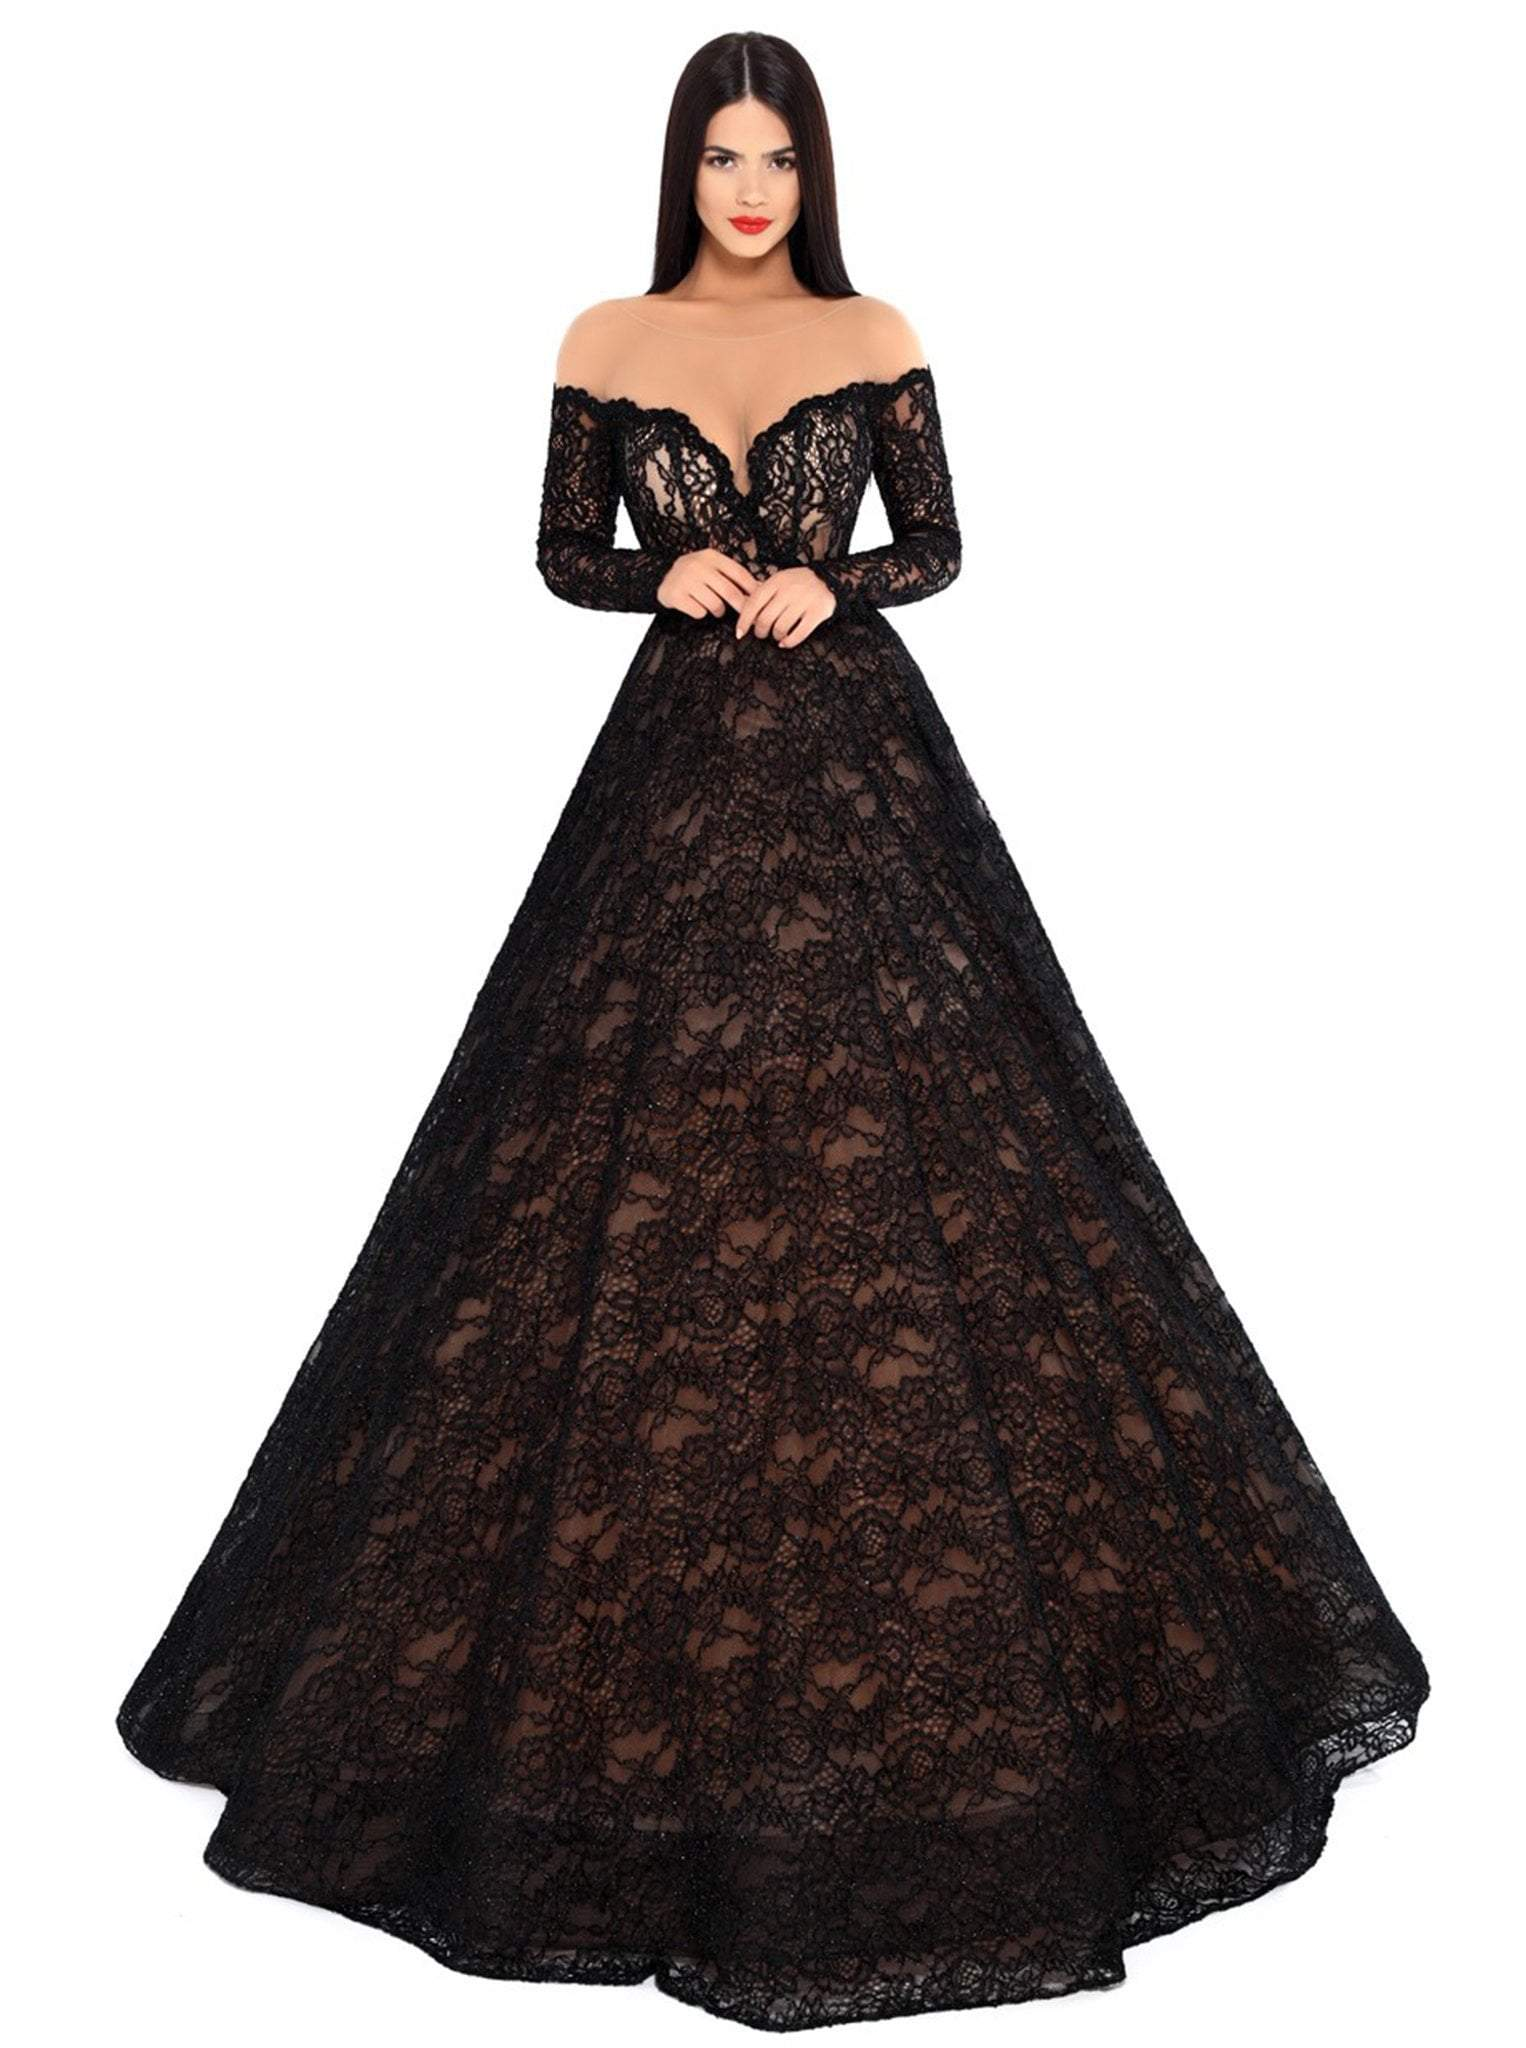 Tarik Ediz - 93729 Illusion Nude Shoulders Allover Lace Ballgown In Black